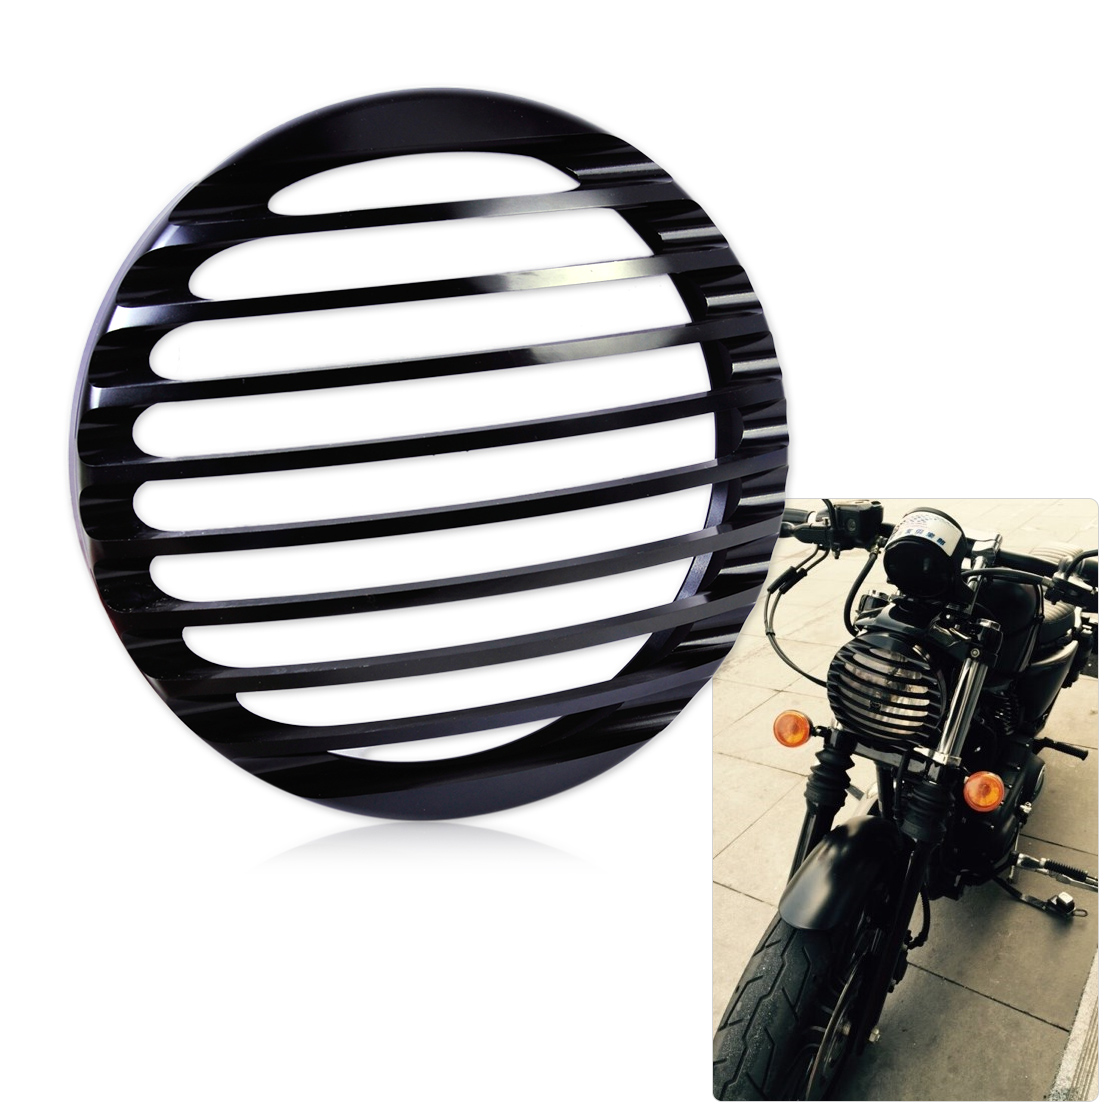 DWCX Headlight Grill Cover for Harley Davidson Sportster XL883 / XL1200 2004 2005 2006 2007 2008 2009 2010 2011 2012 2013 2014